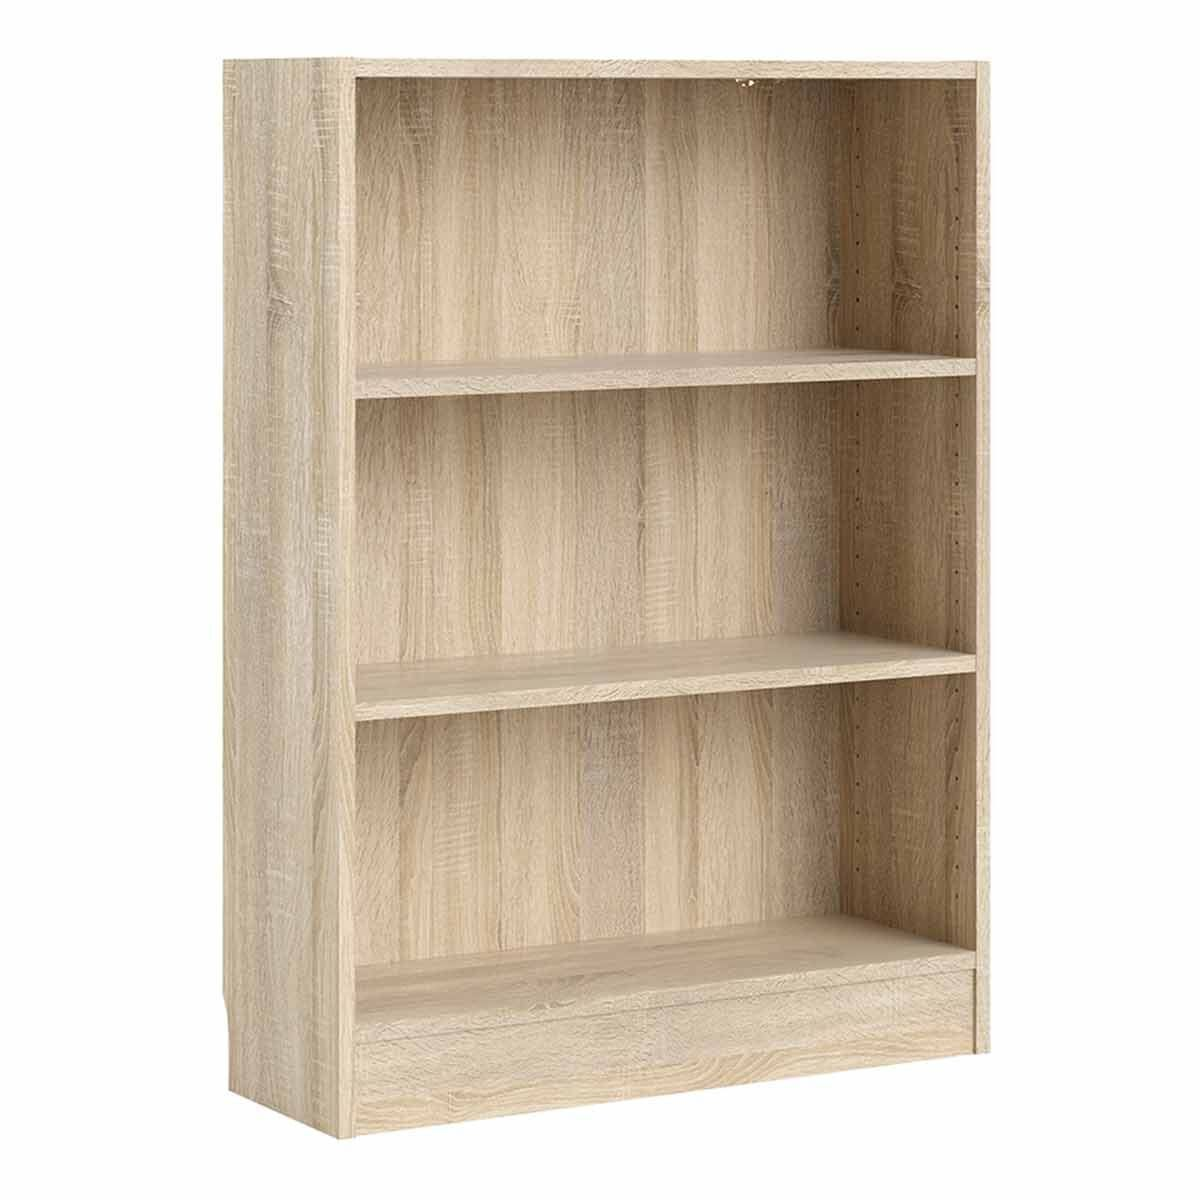 Basic Low Wide Bookcase with 2 Shelves